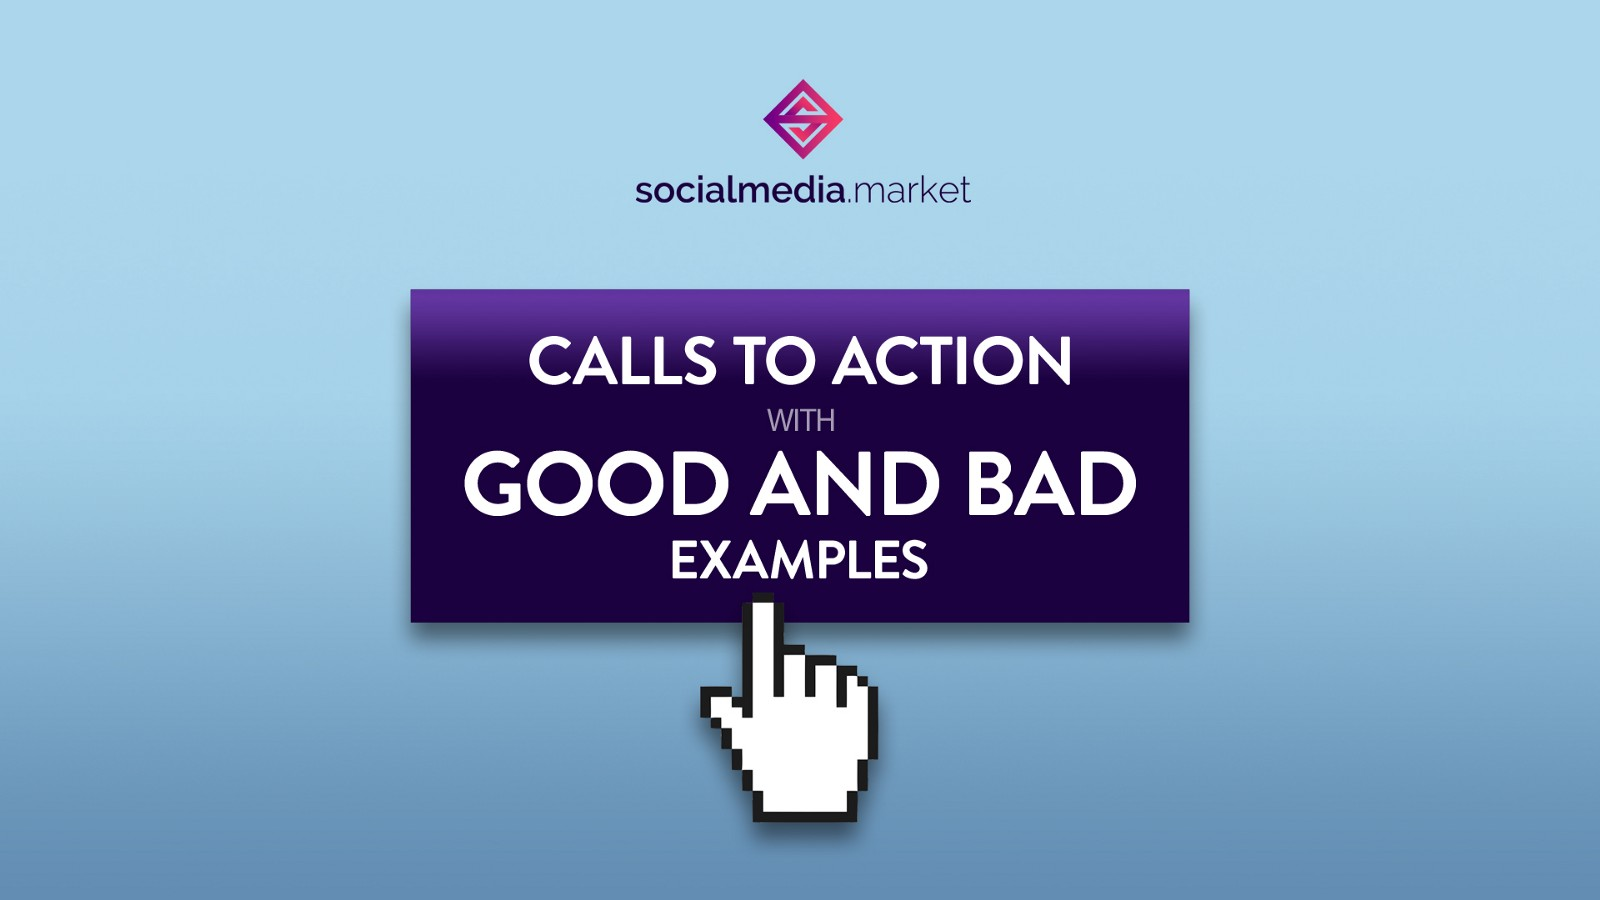 Calls To Action With Good And Bad Examples